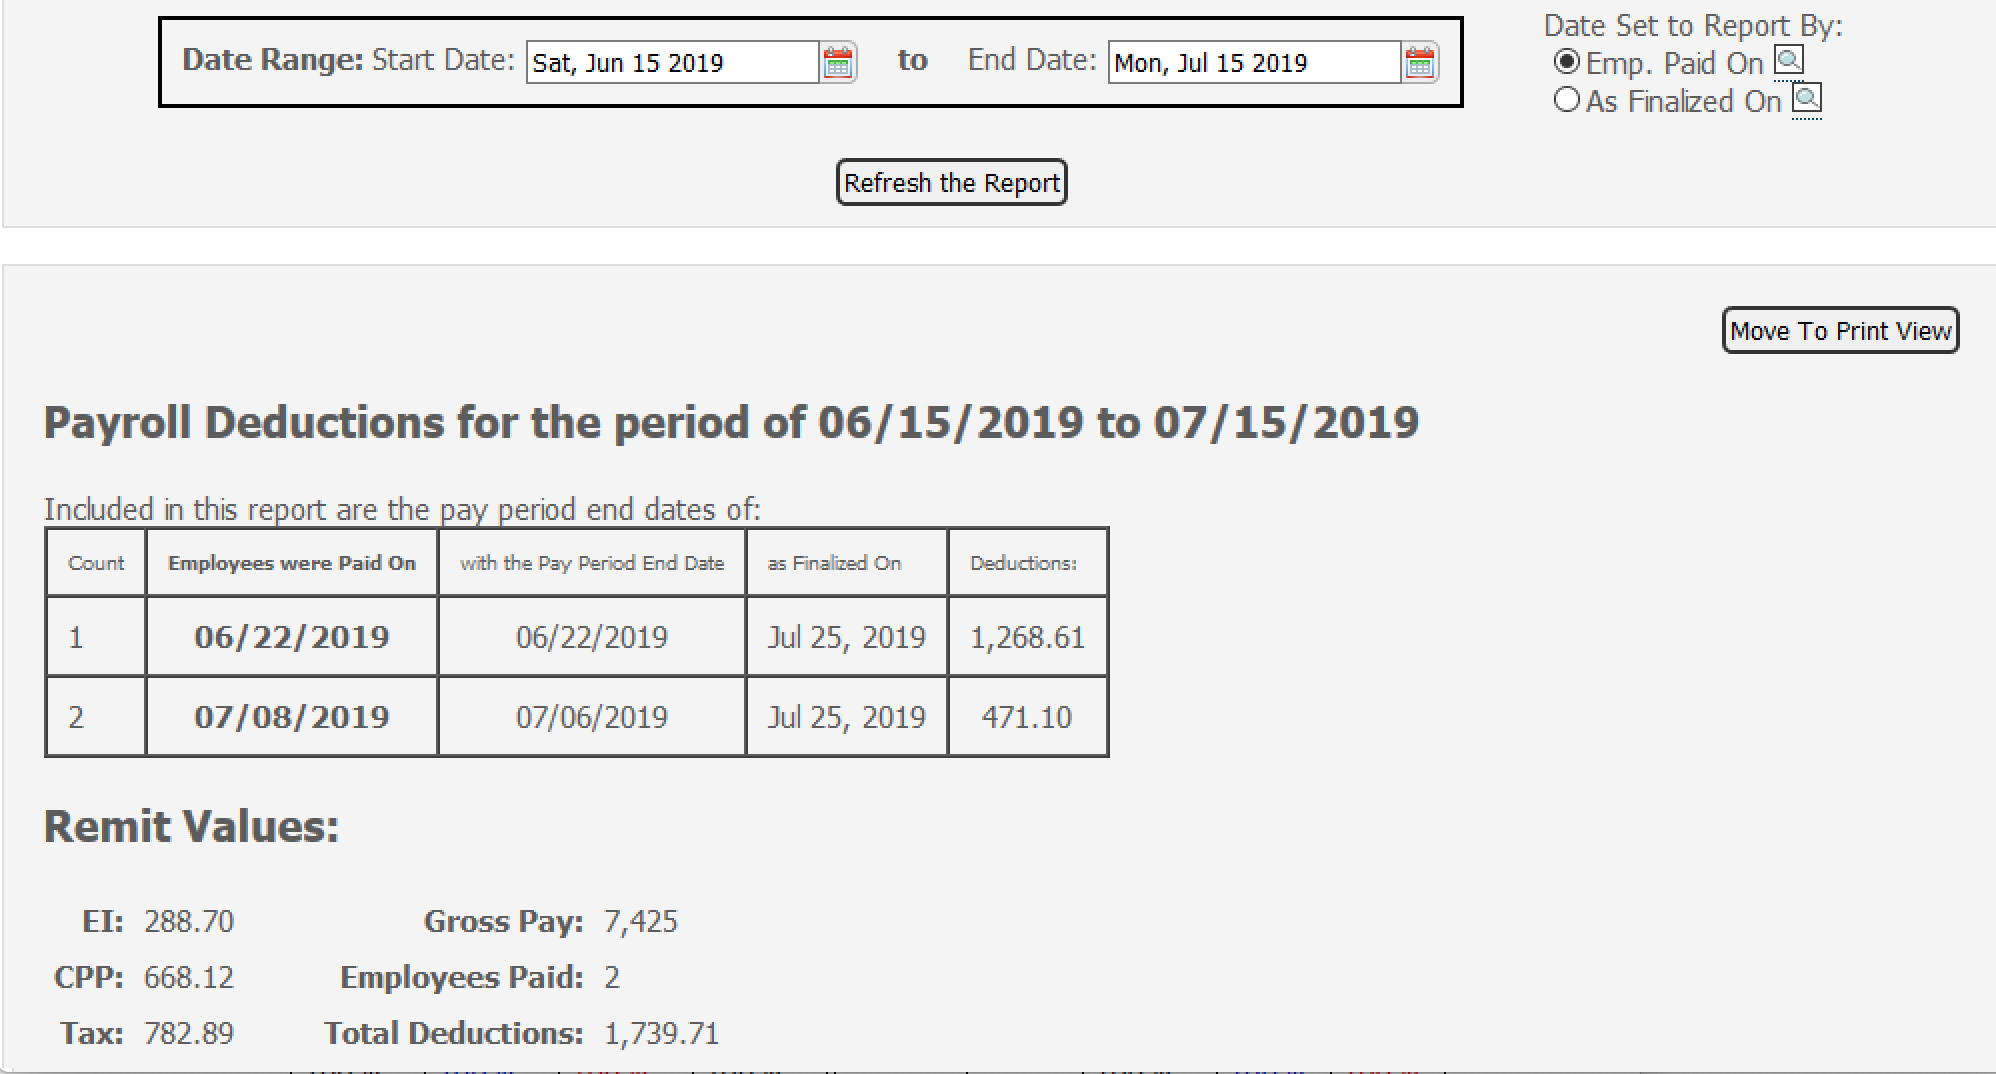 Payroll Connected various read reports